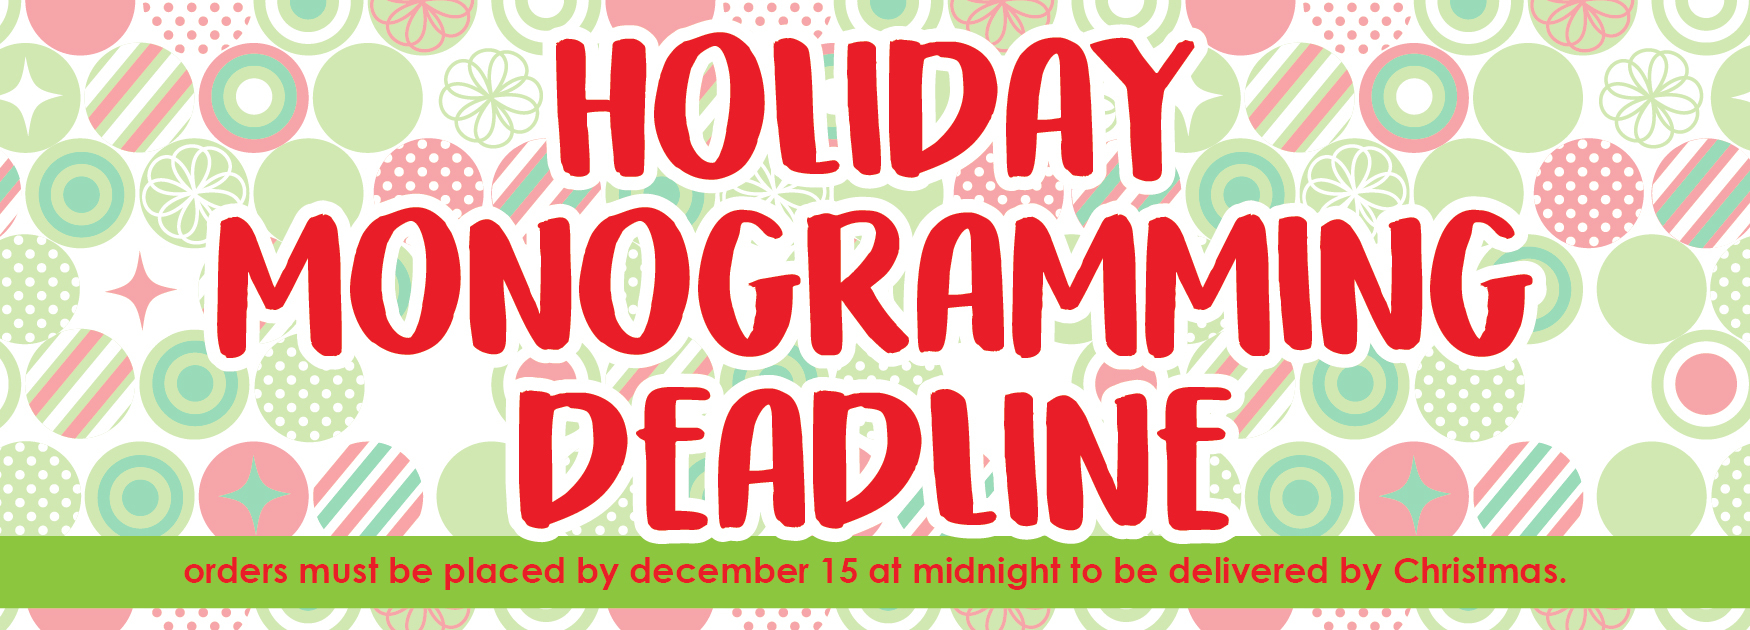 monogram deadline is december 15 to get items by christmas!